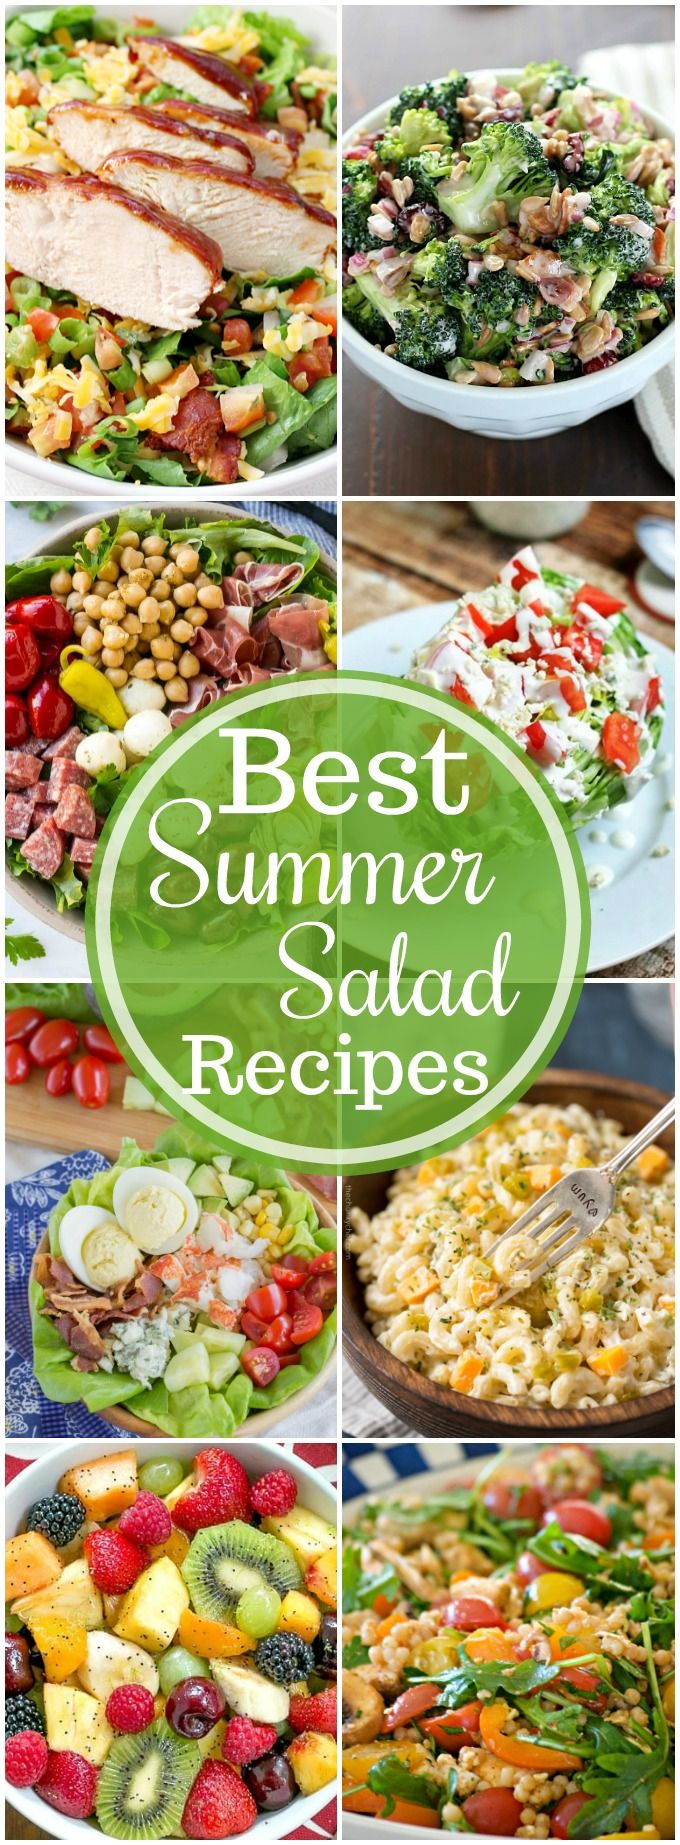 You know when it's summer time that means cookouts and potlucks. We put together our best summer salad recipes just for you!